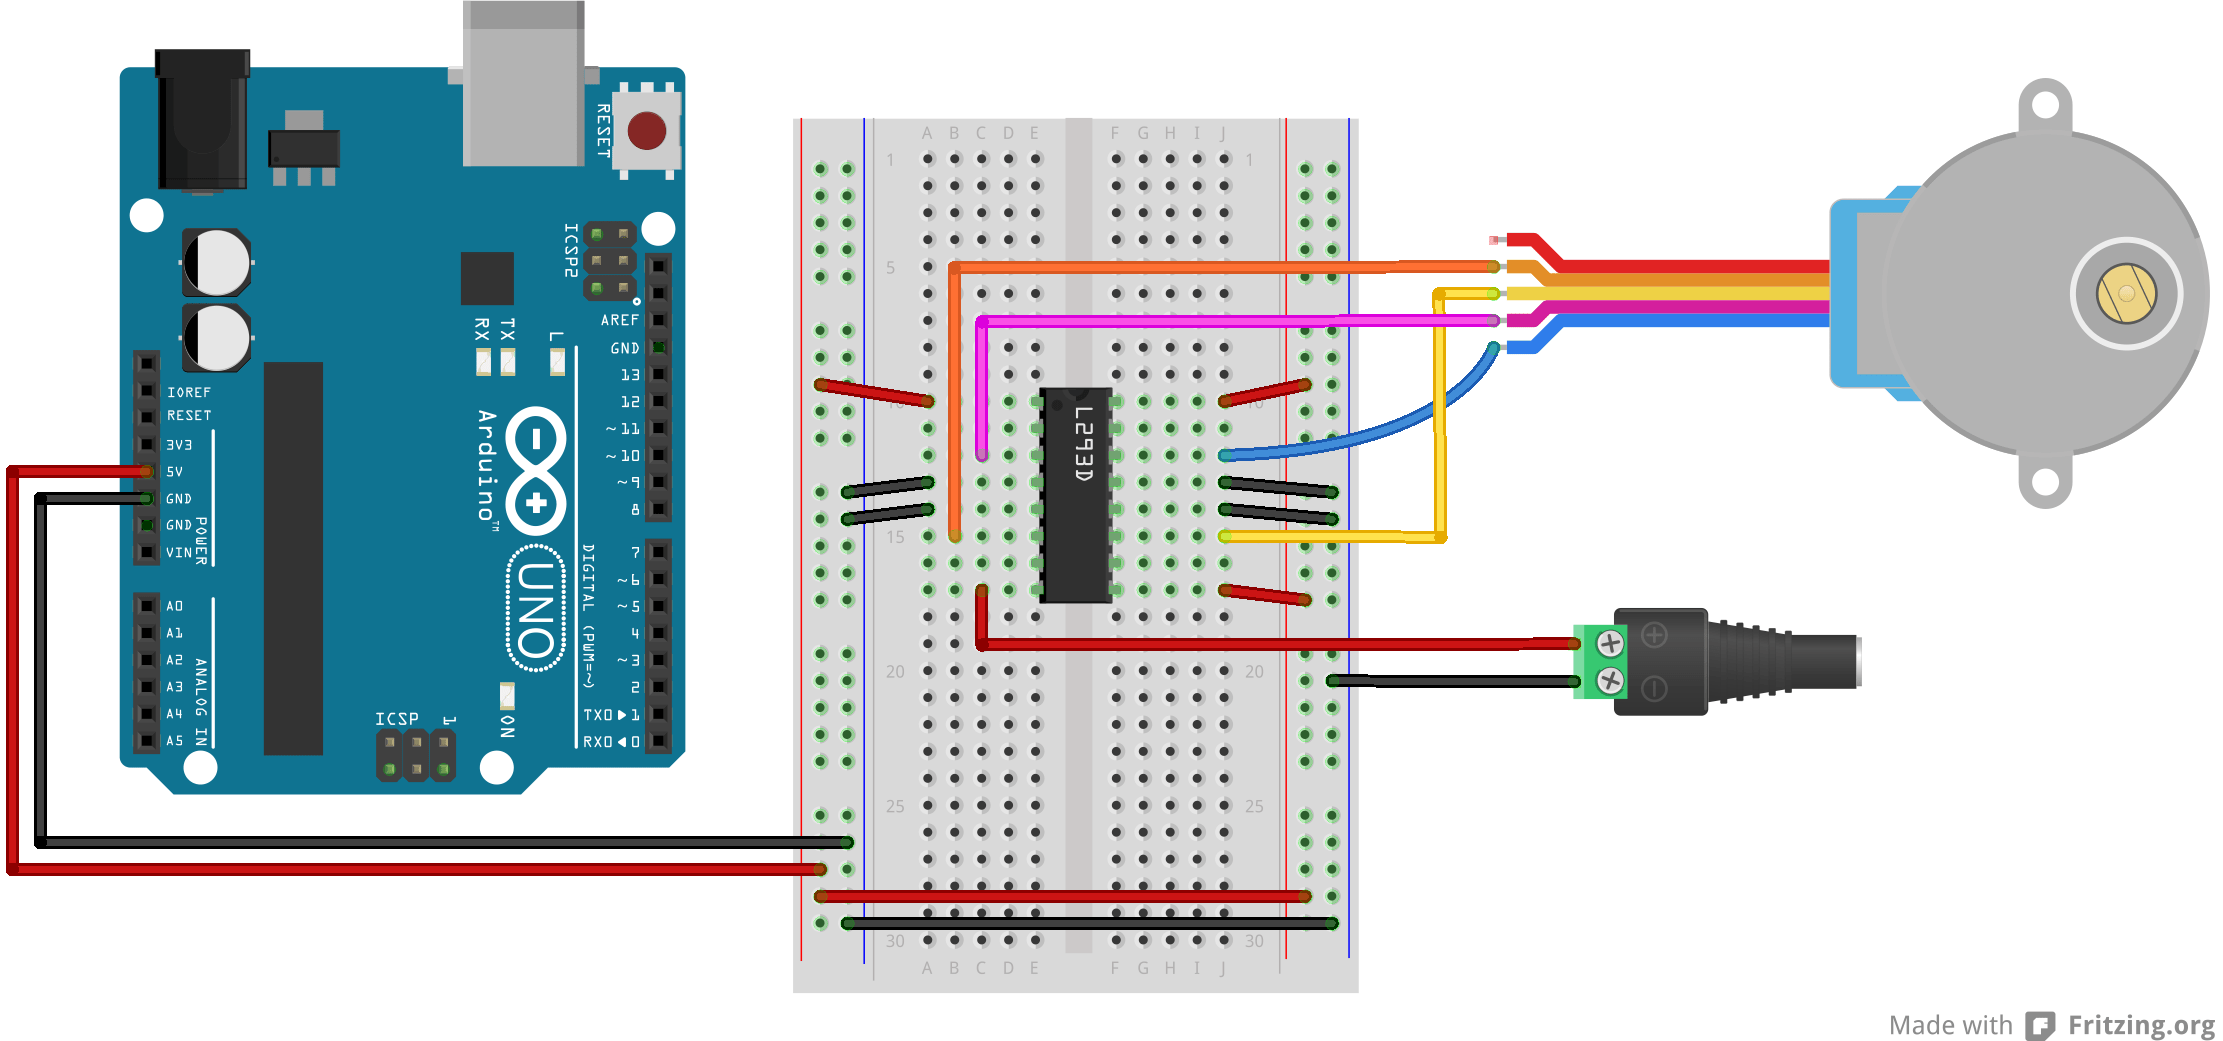 4 wire dc motor connection diagram coleman mach thermostat wiring lab controlling a stepper with an h bridge itp physical breadboard view of connected to arduino for driving